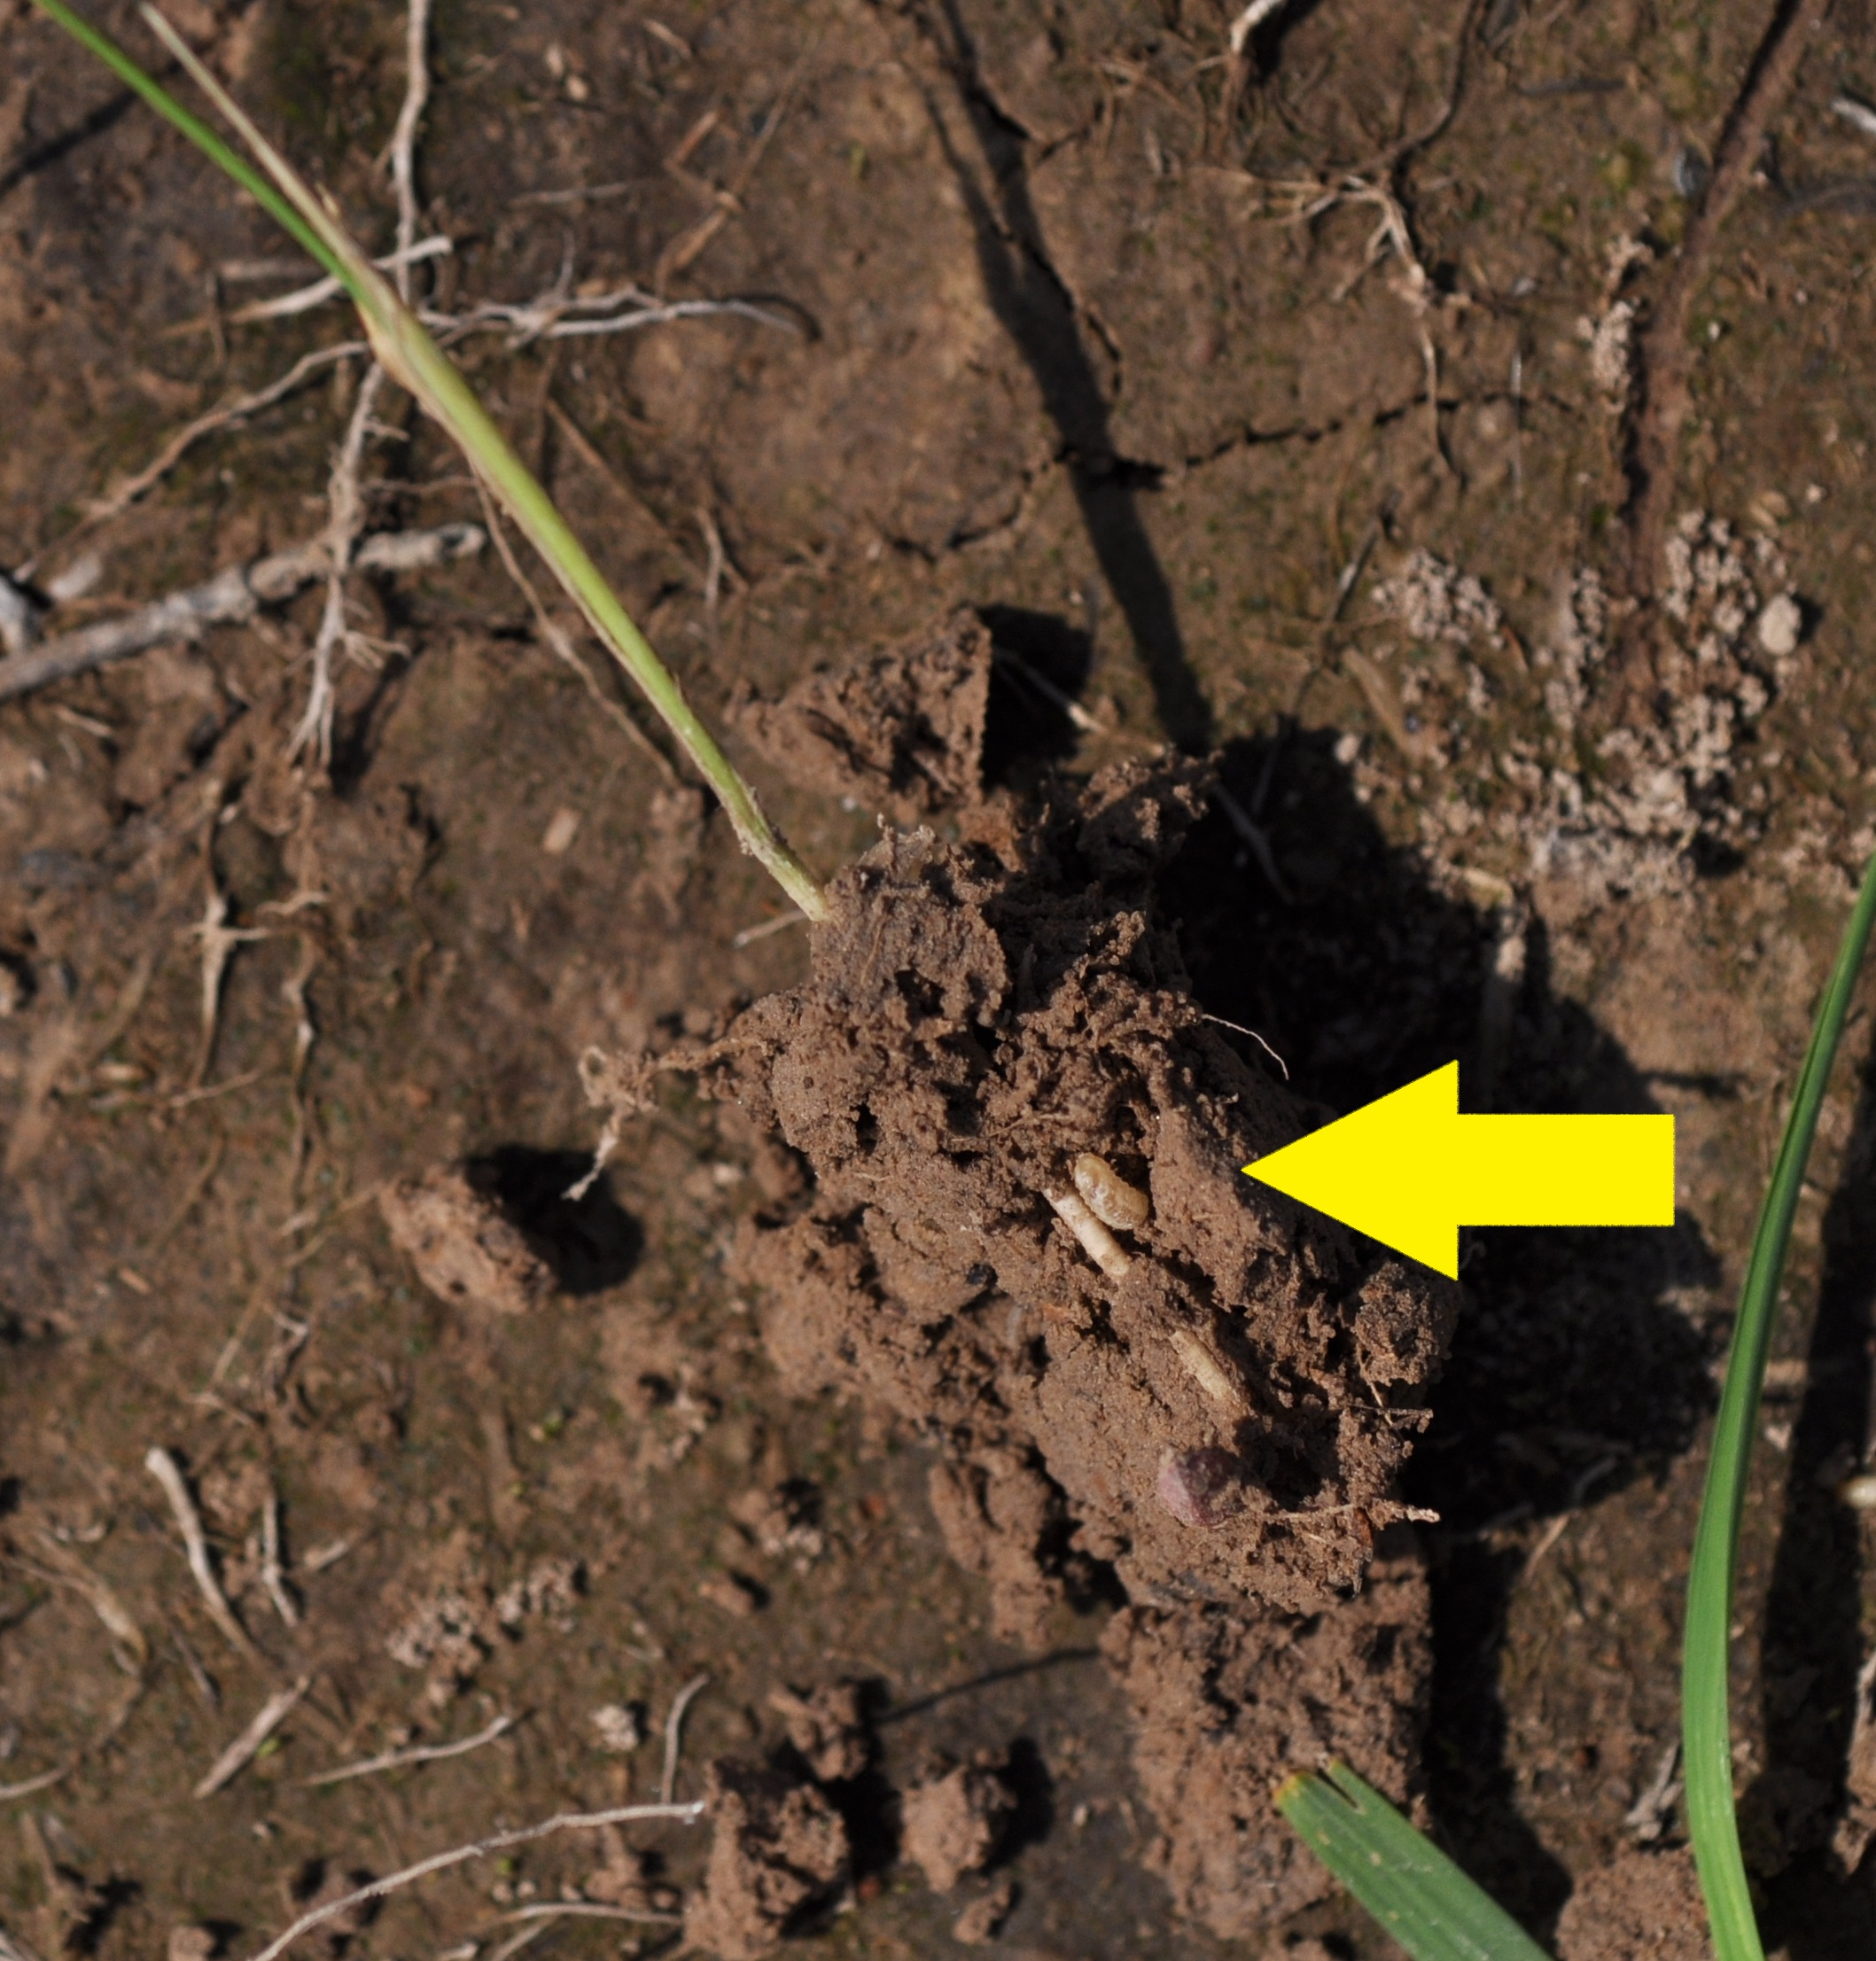 Ricetec louisiana rice insects for Where do we find soil